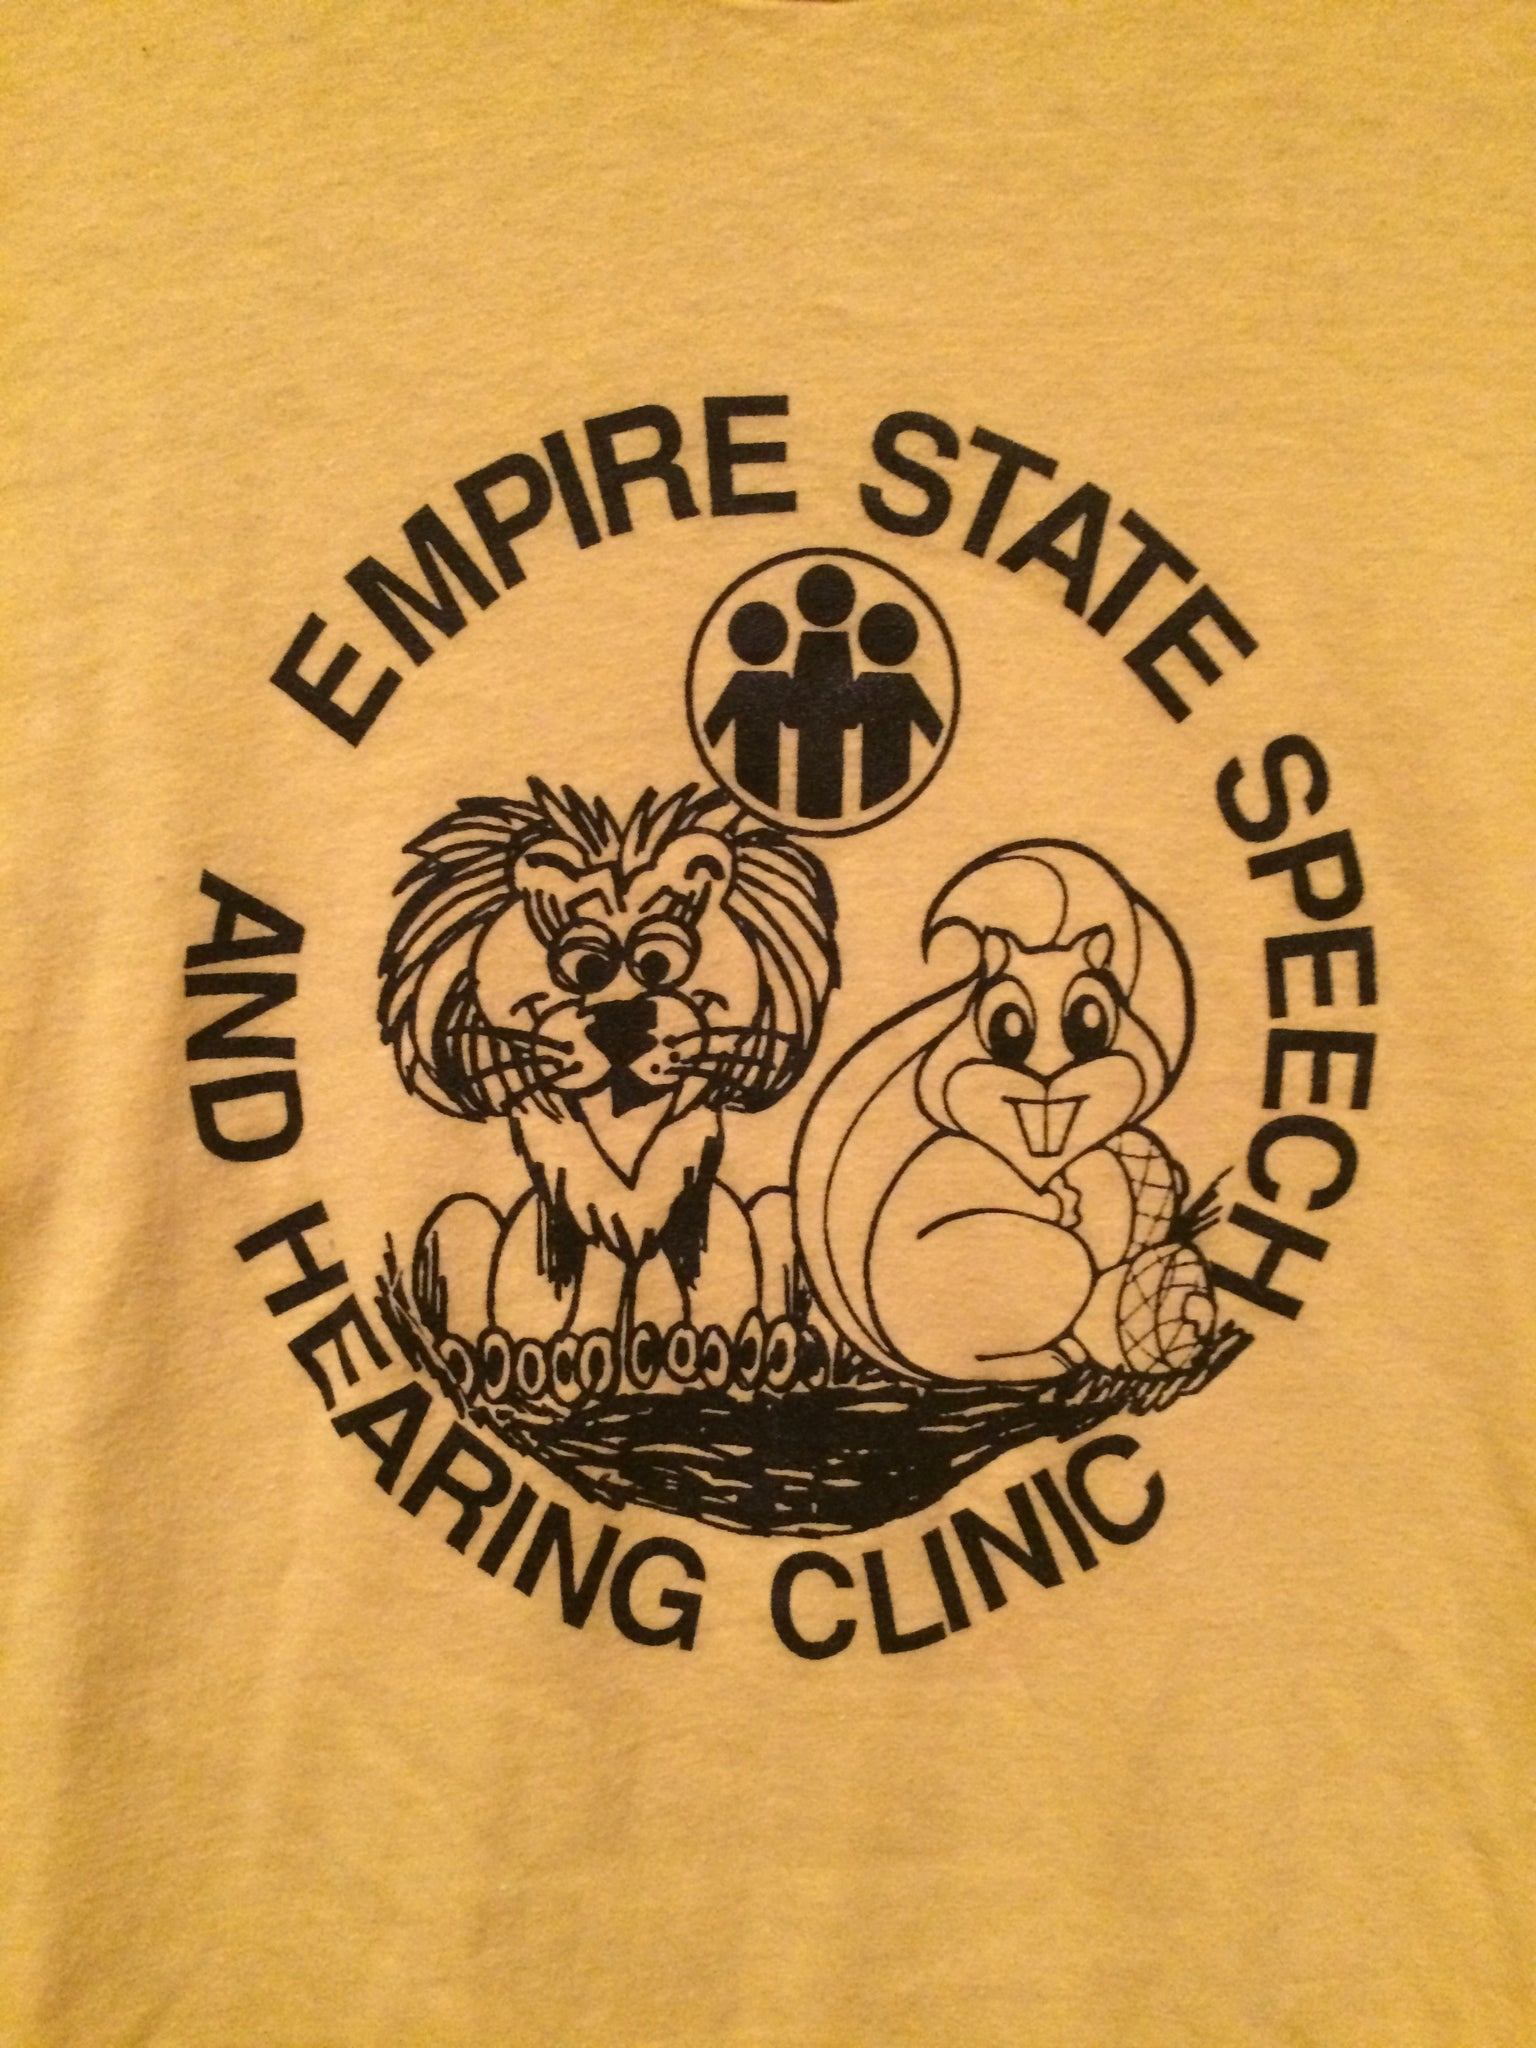 80's Empire State Games Tee